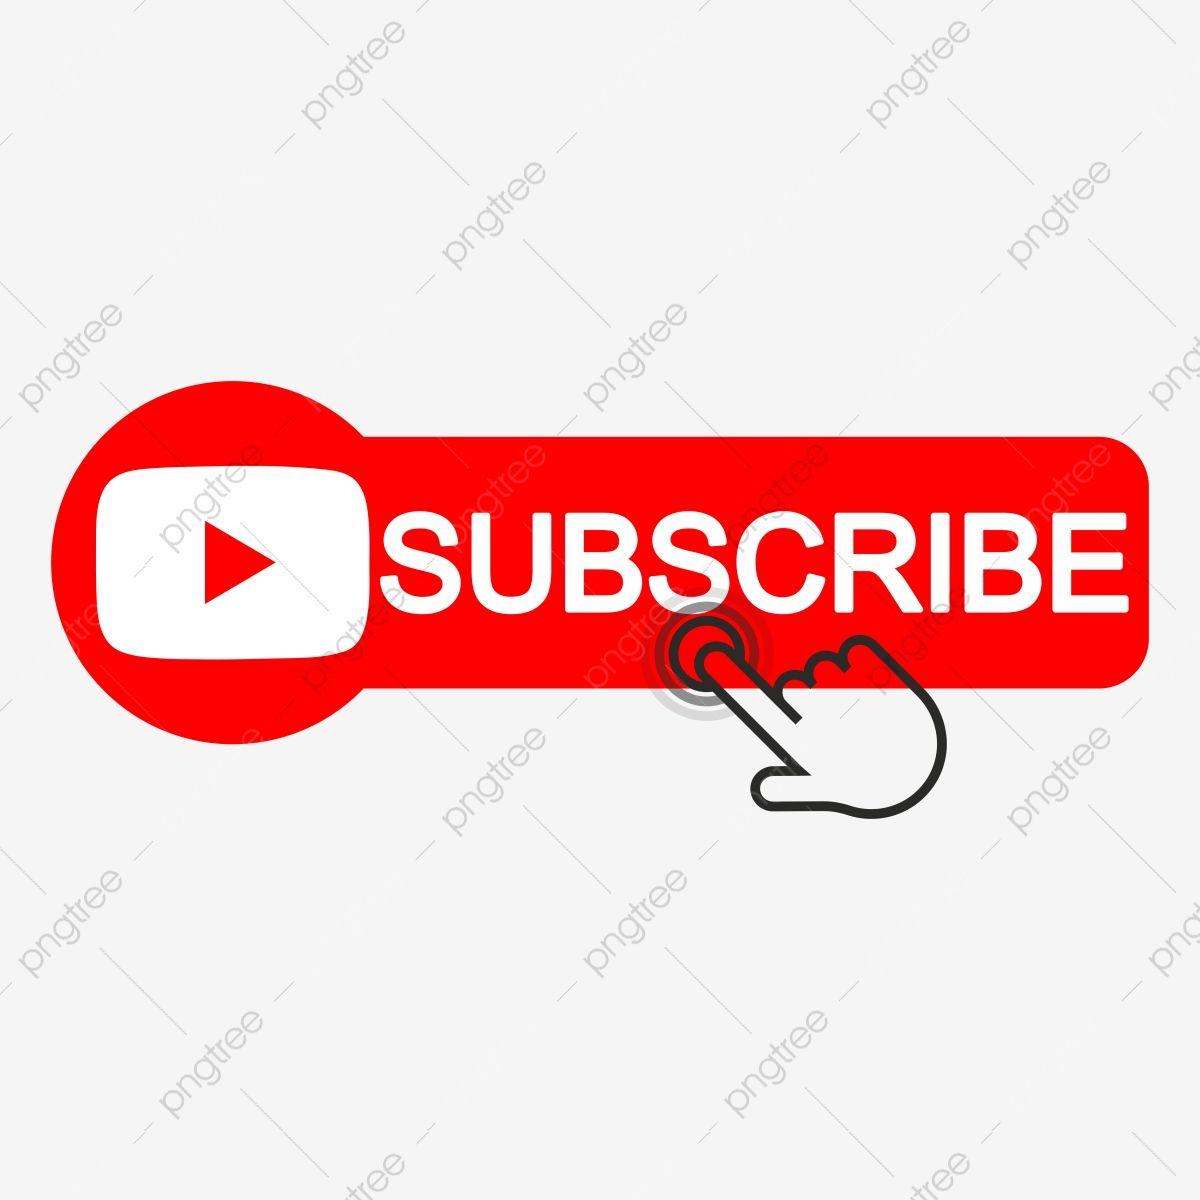 Subscribe Png Youtube Logo Youtube Design Youtube Channel Name Ideas